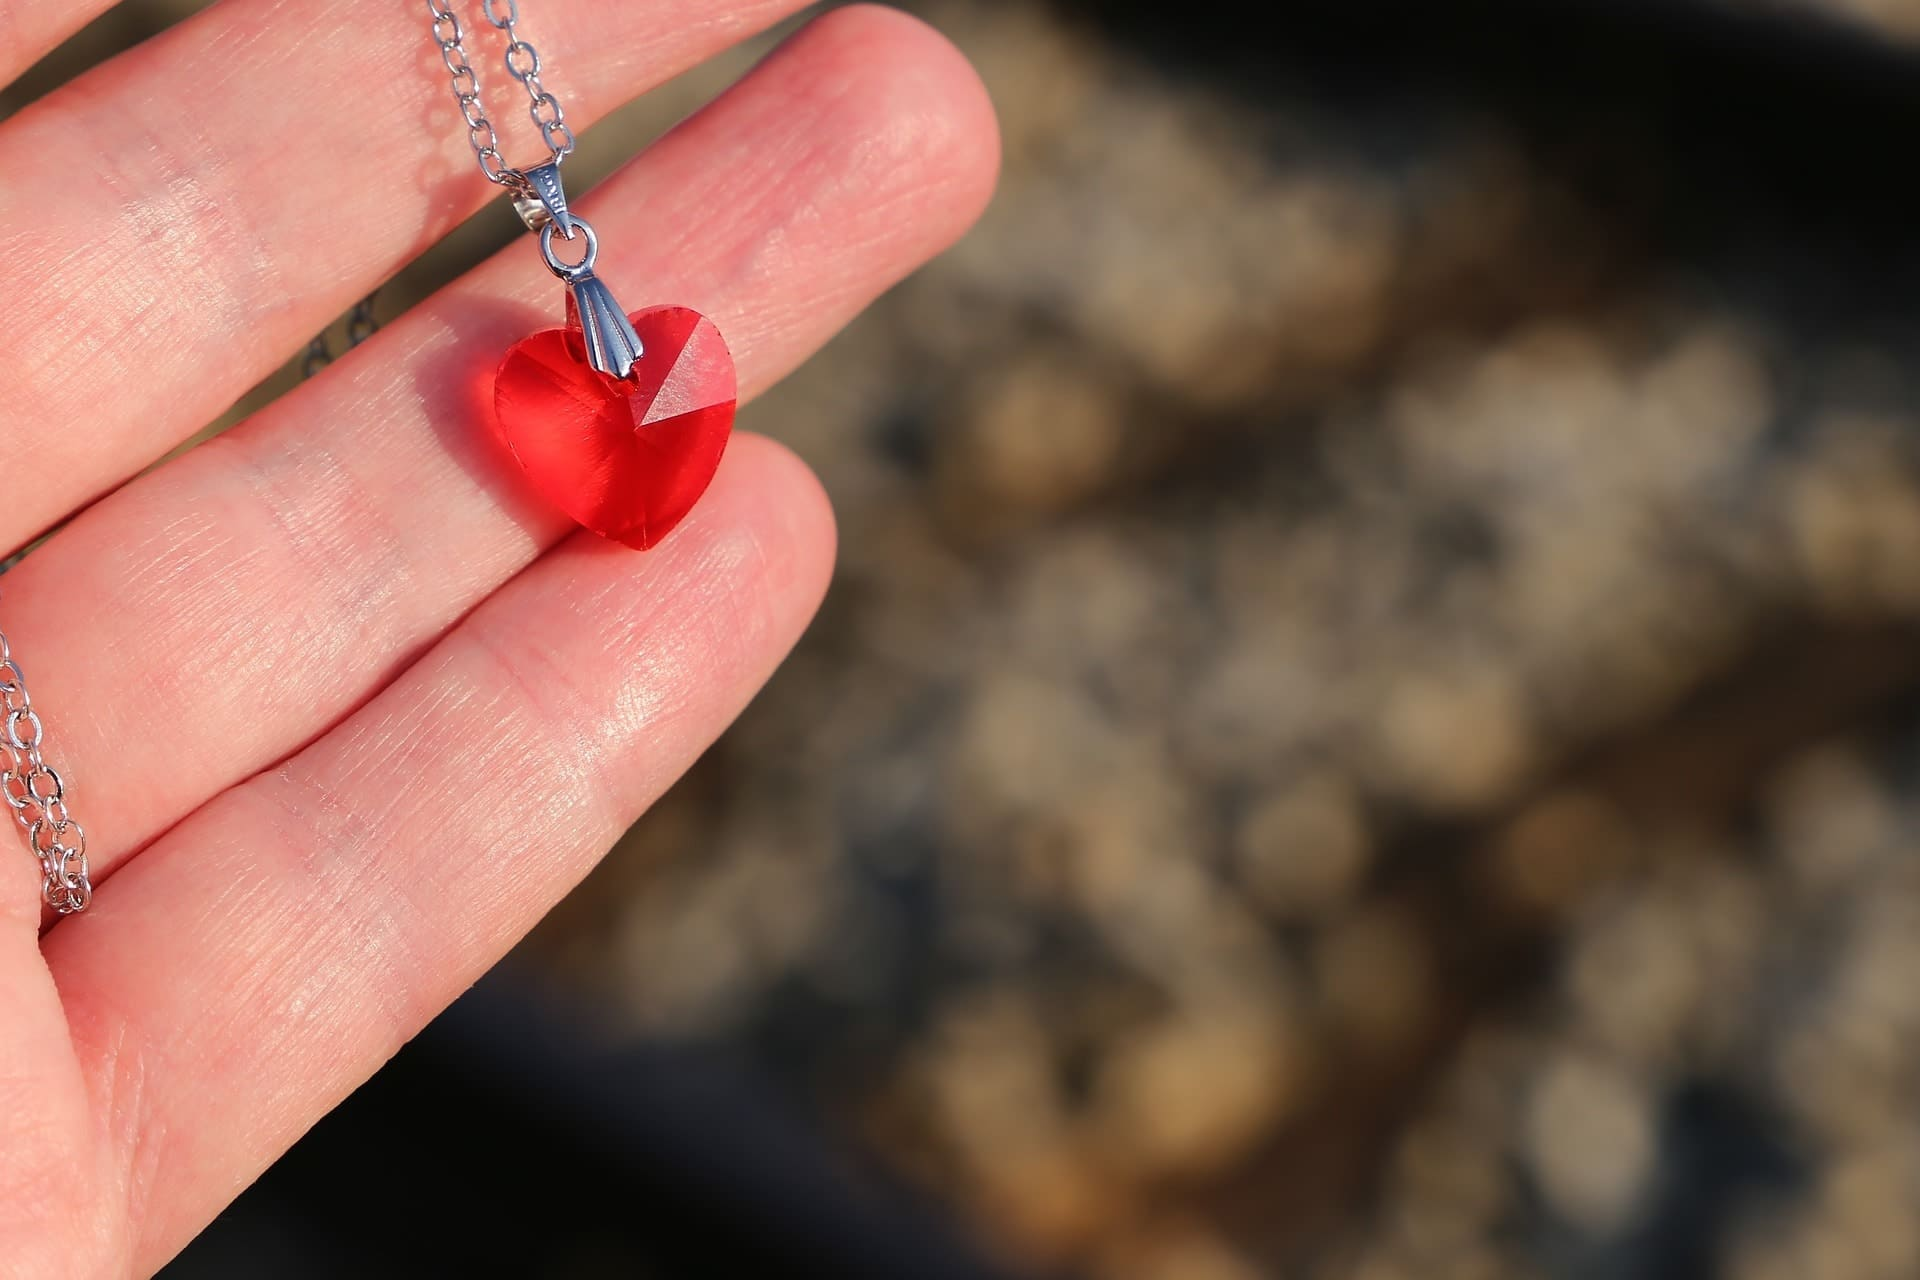 THE BEST HEART NECKLACES FOR YOUR GIRLFRIEND